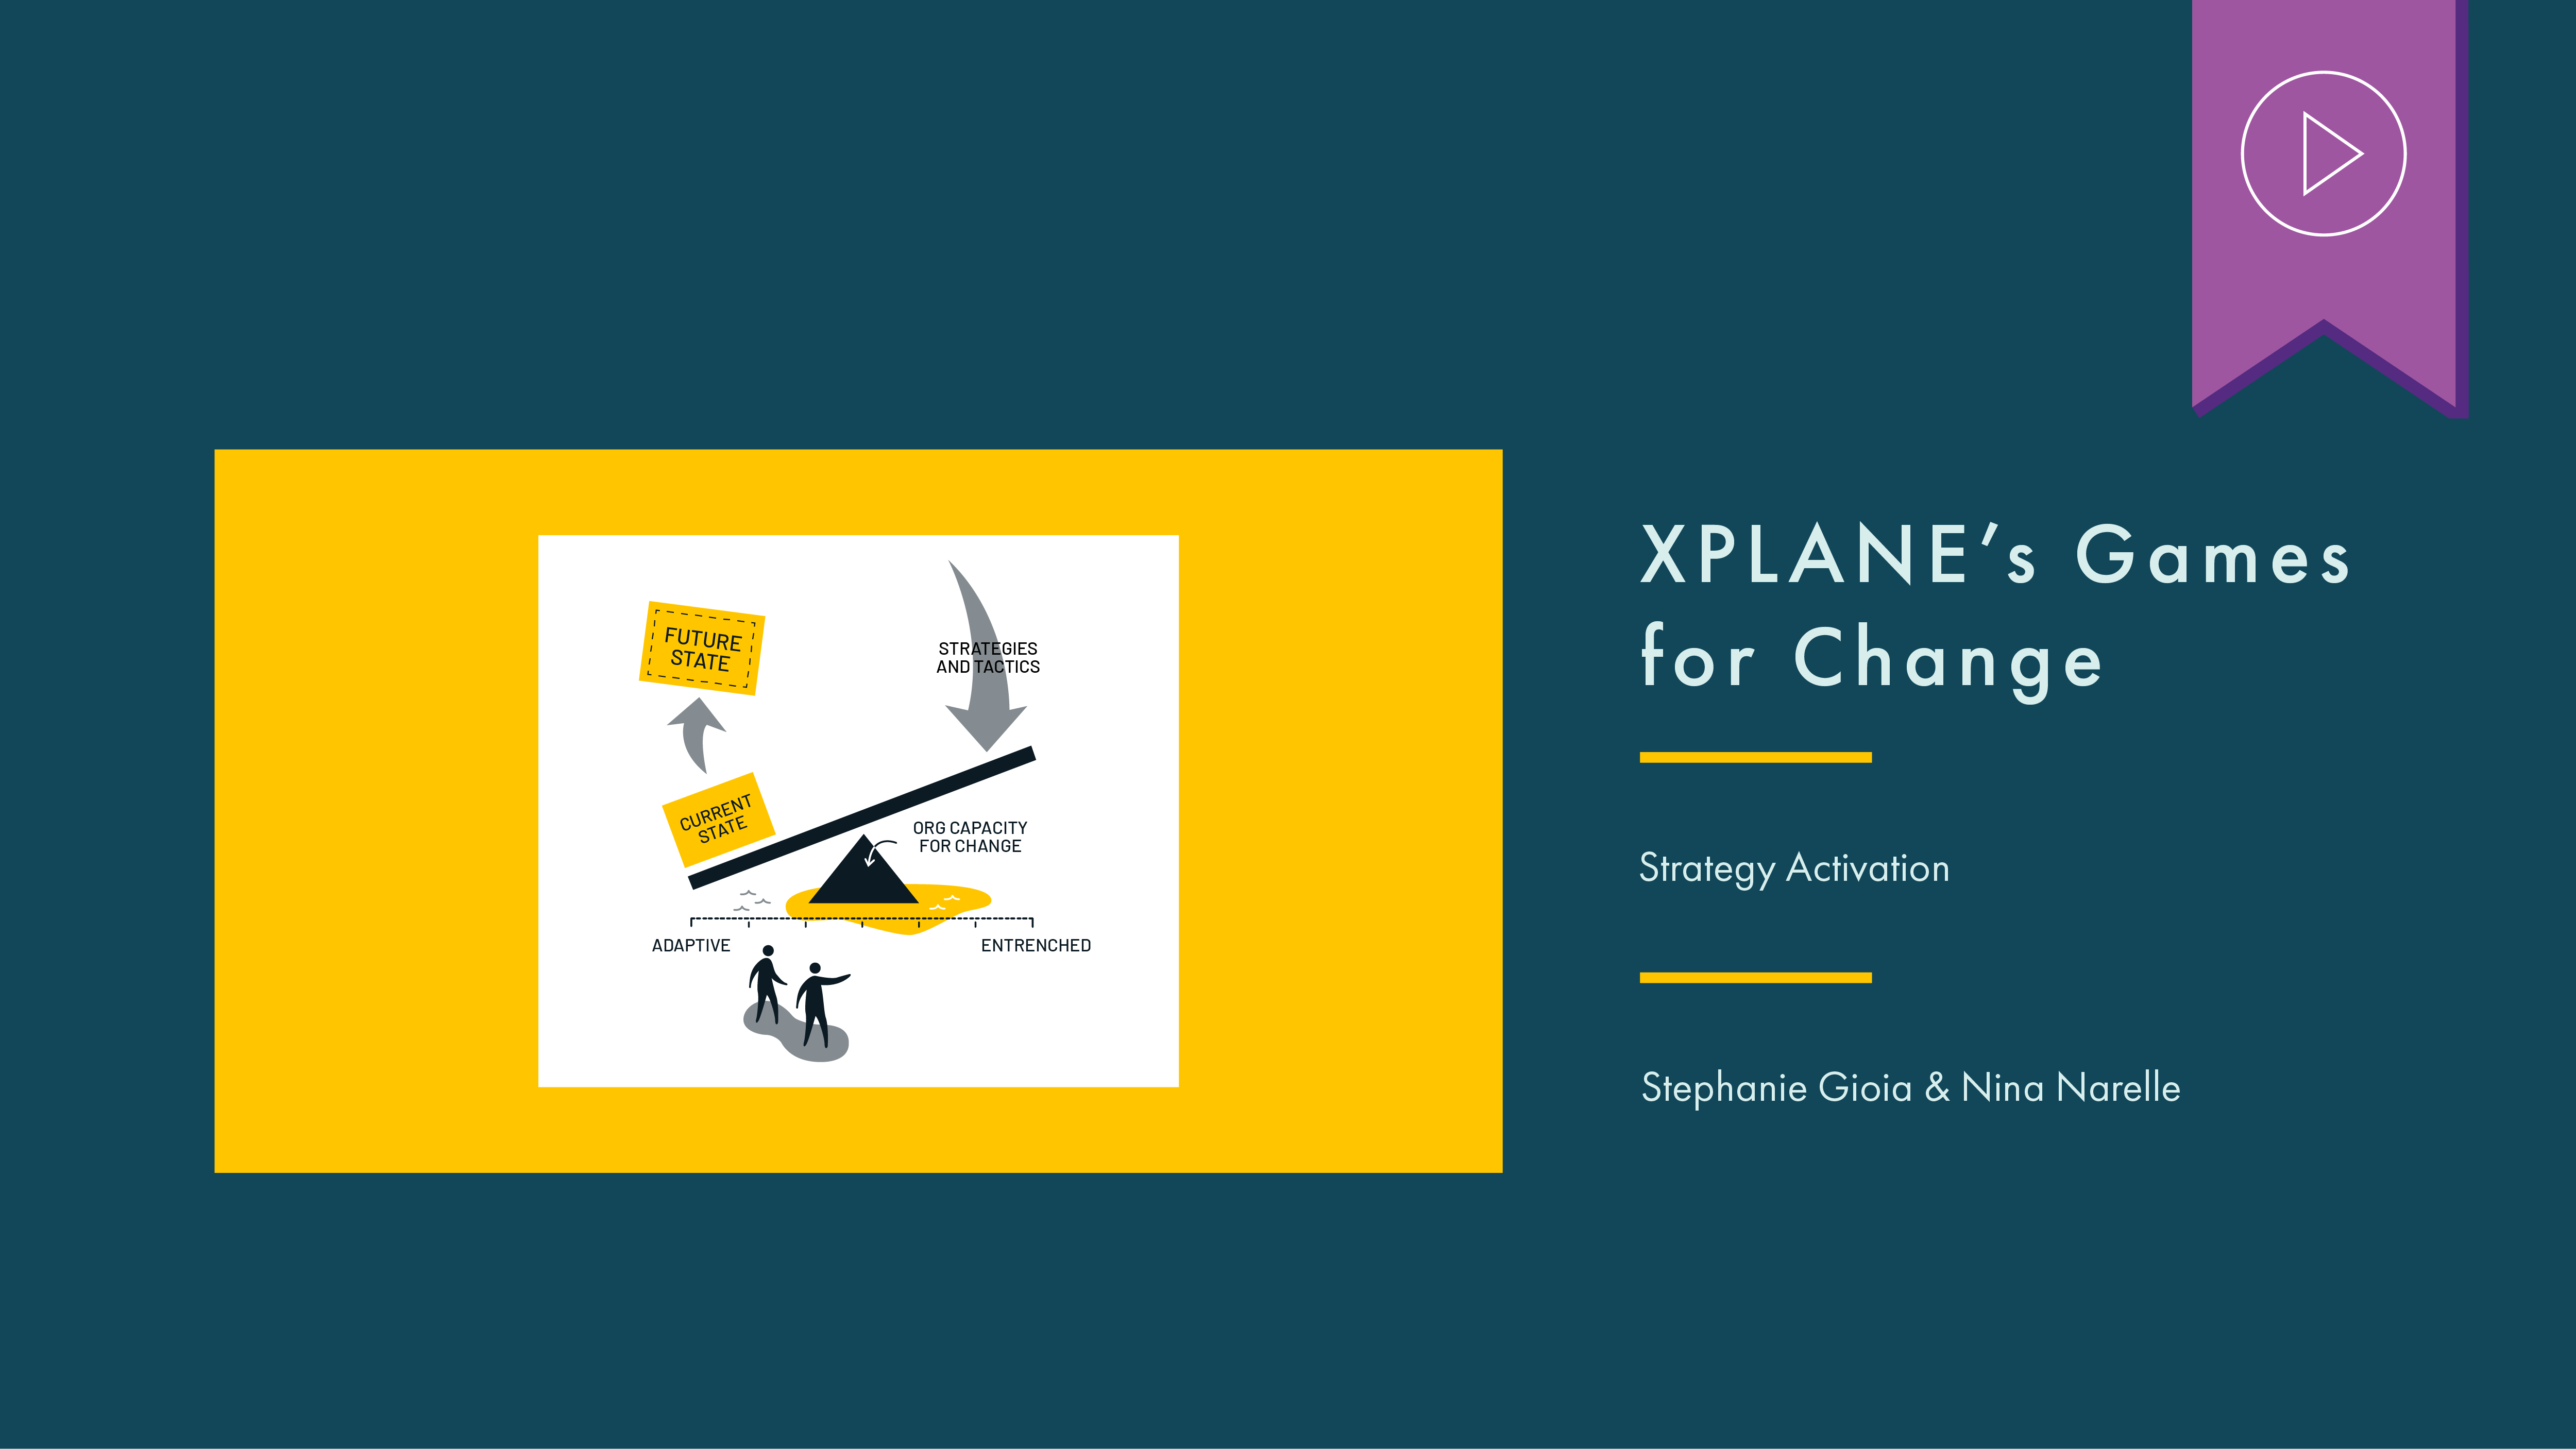 Header image showing change lever graphic. Text outlines event details